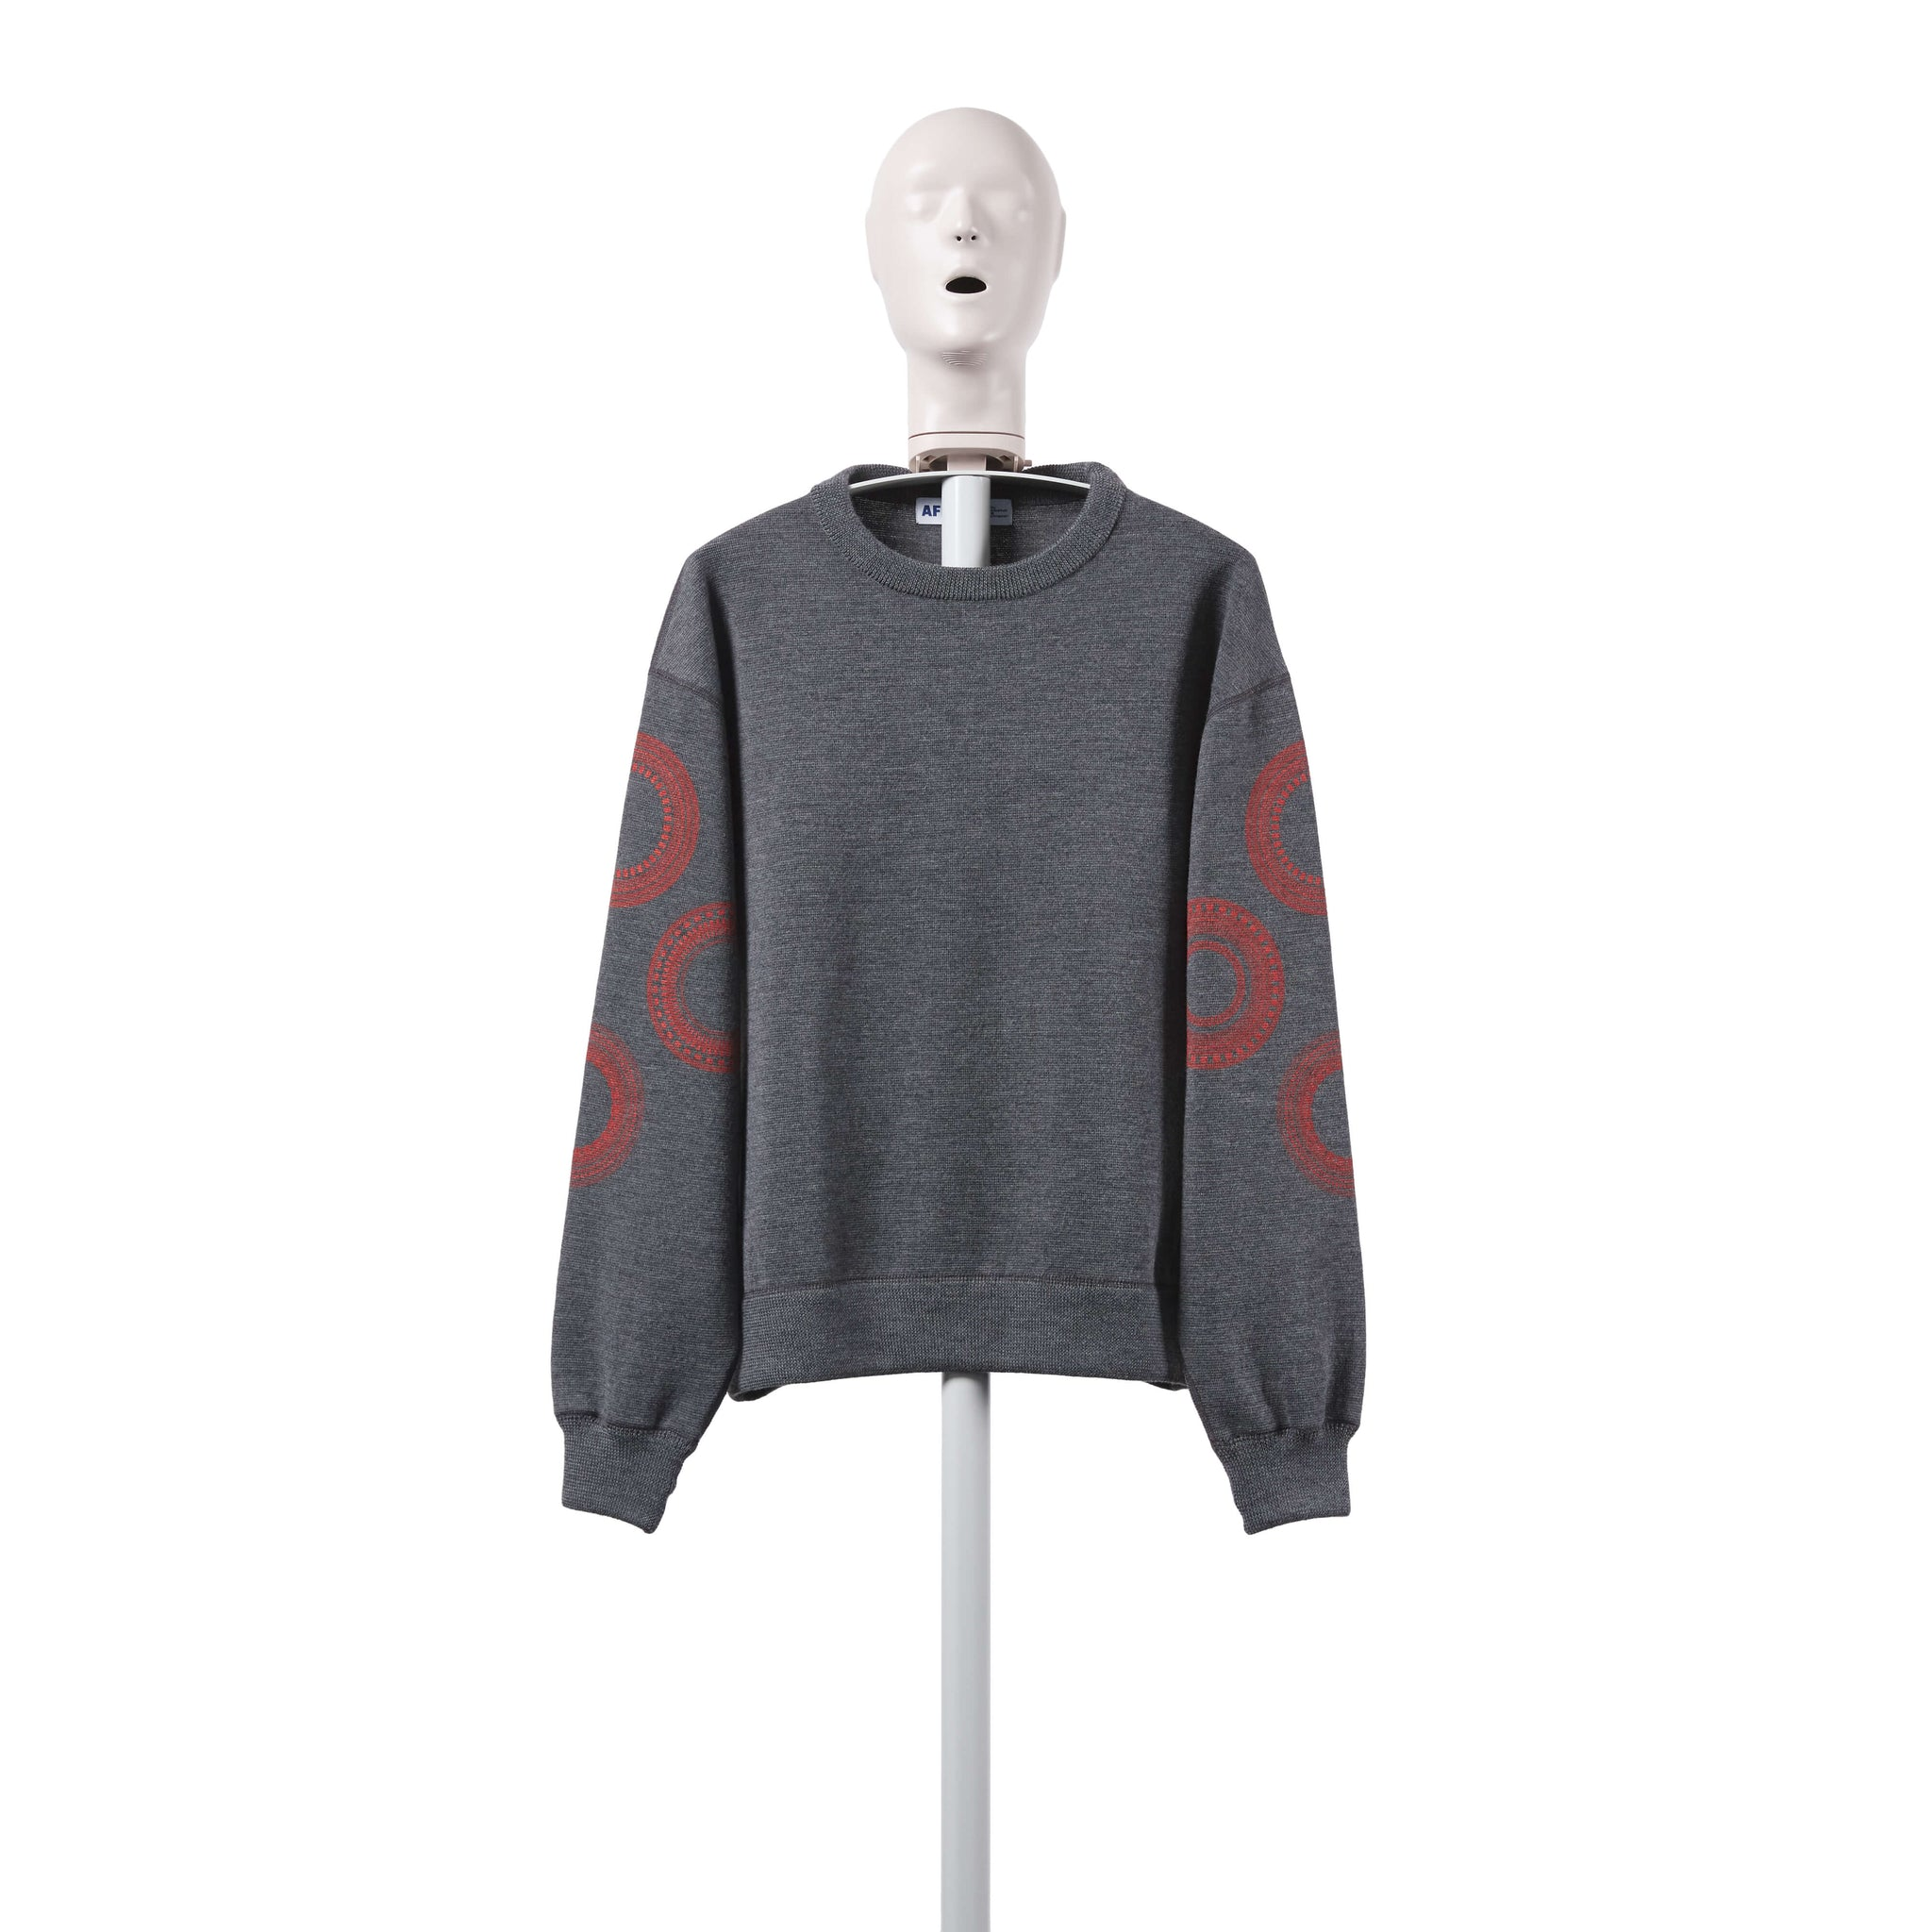 AFFIX WORKS AFFXWRKS TACH TUNING KNIT GREY/RED EXCLUSIVE